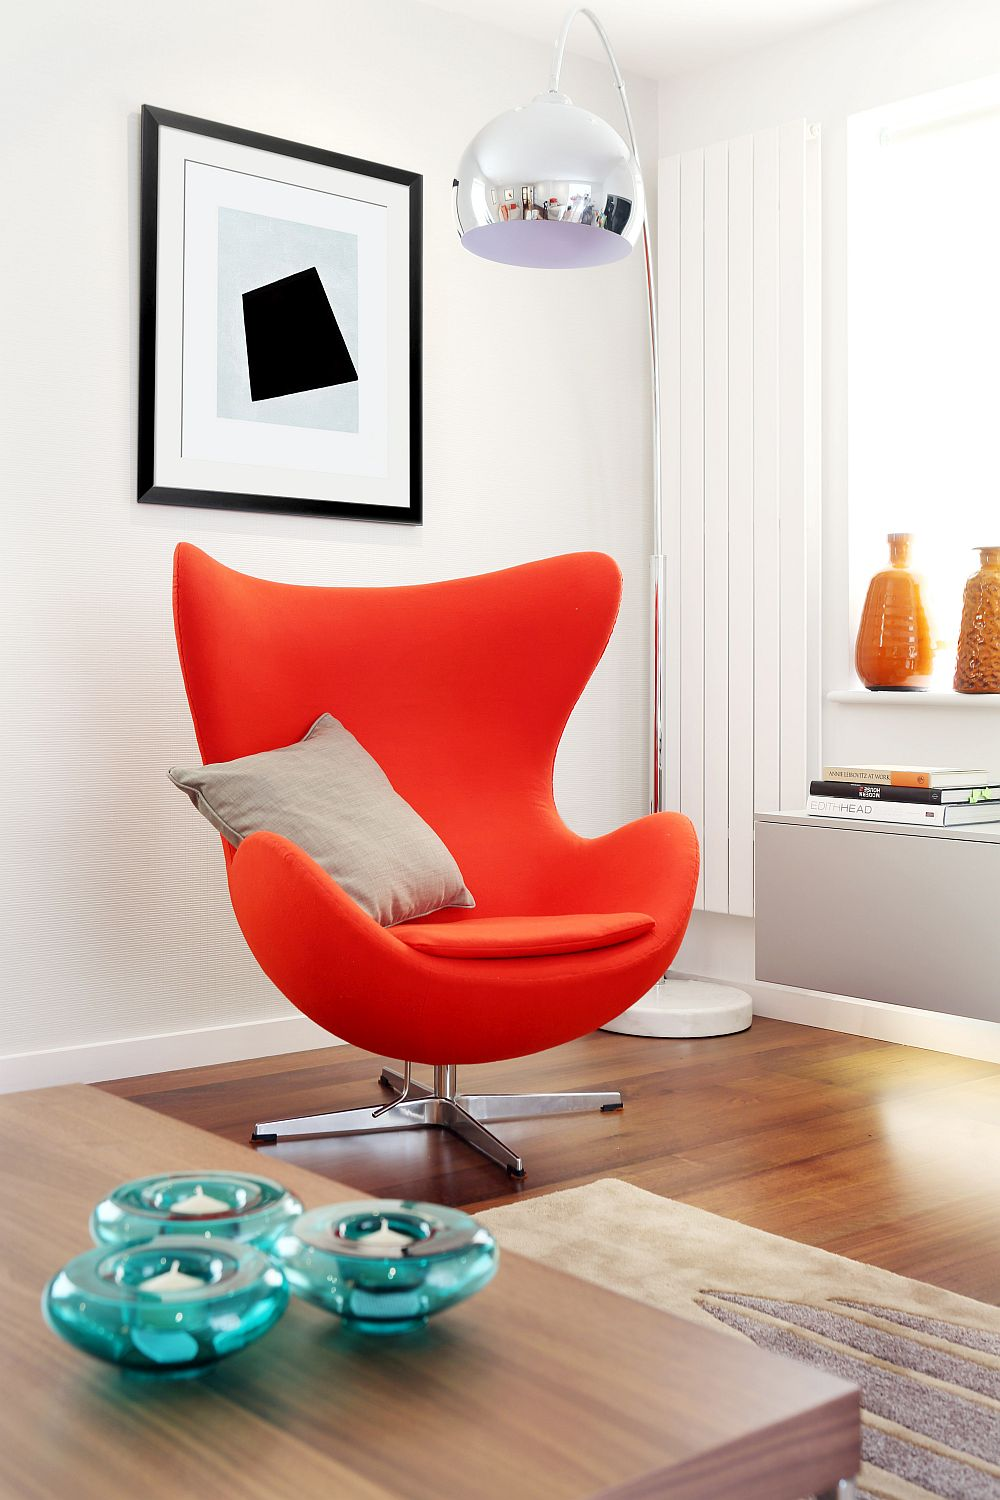 Design Define Ambiance redesigned family home in buckinghamshire by lli design view gallery arne jacobsen egg chair brings color to the lovely tv room